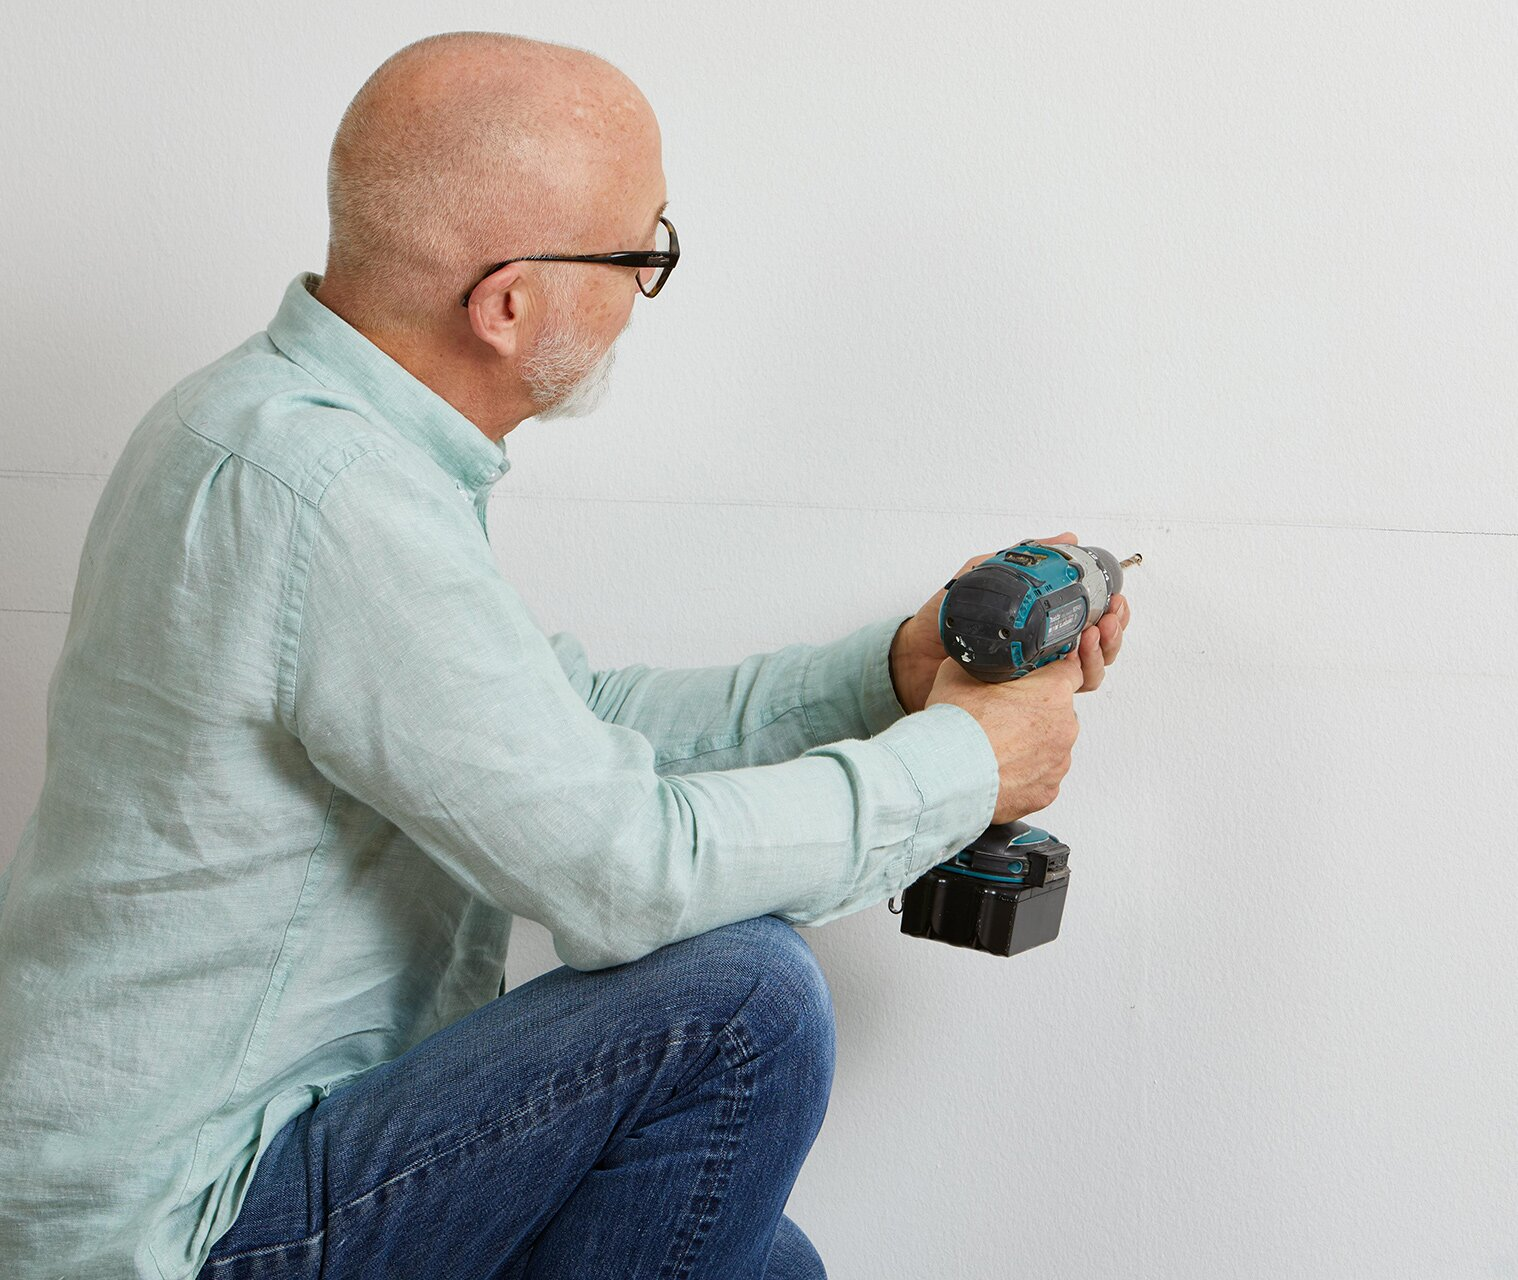 making wall hole with electric drill